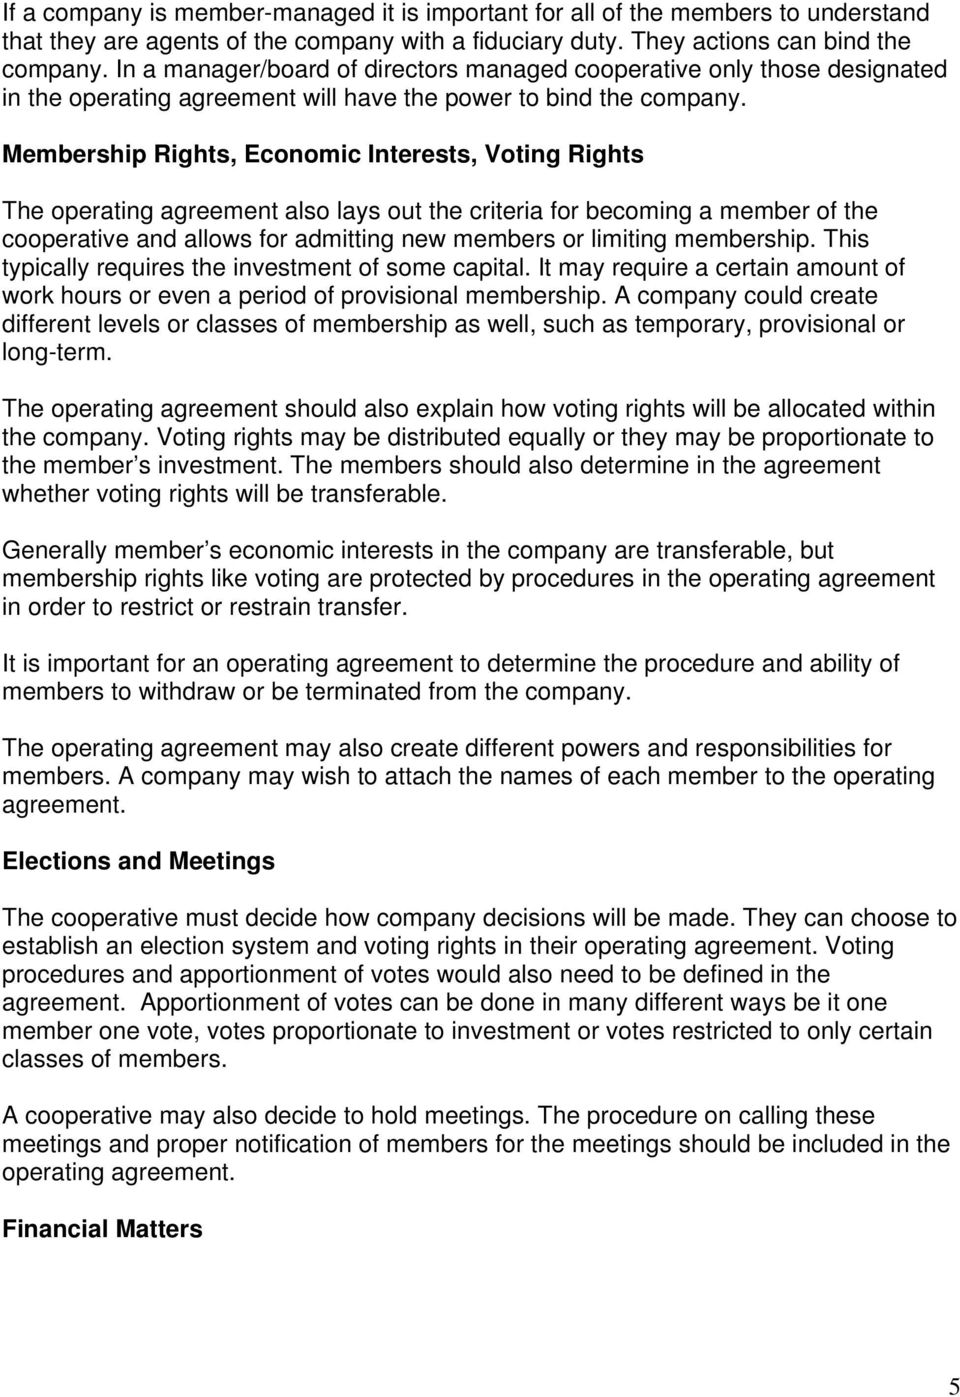 Membership Rights, Economic Interests, Voting Rights The operating agreement also lays out the criteria for becoming a member of the cooperative and allows for admitting new members or limiting